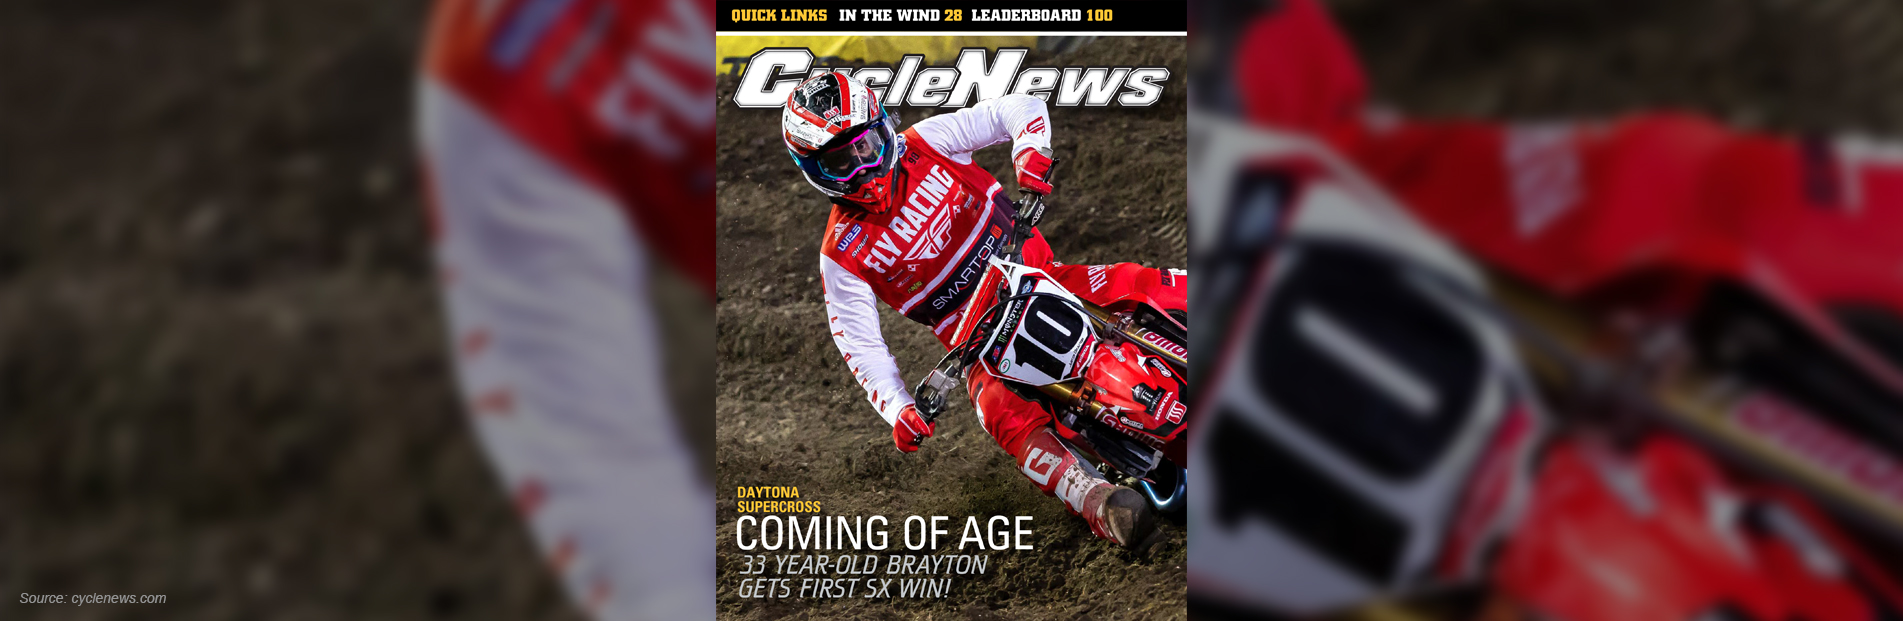 Featured in Cycle News Motorcycling Magazine Front Page